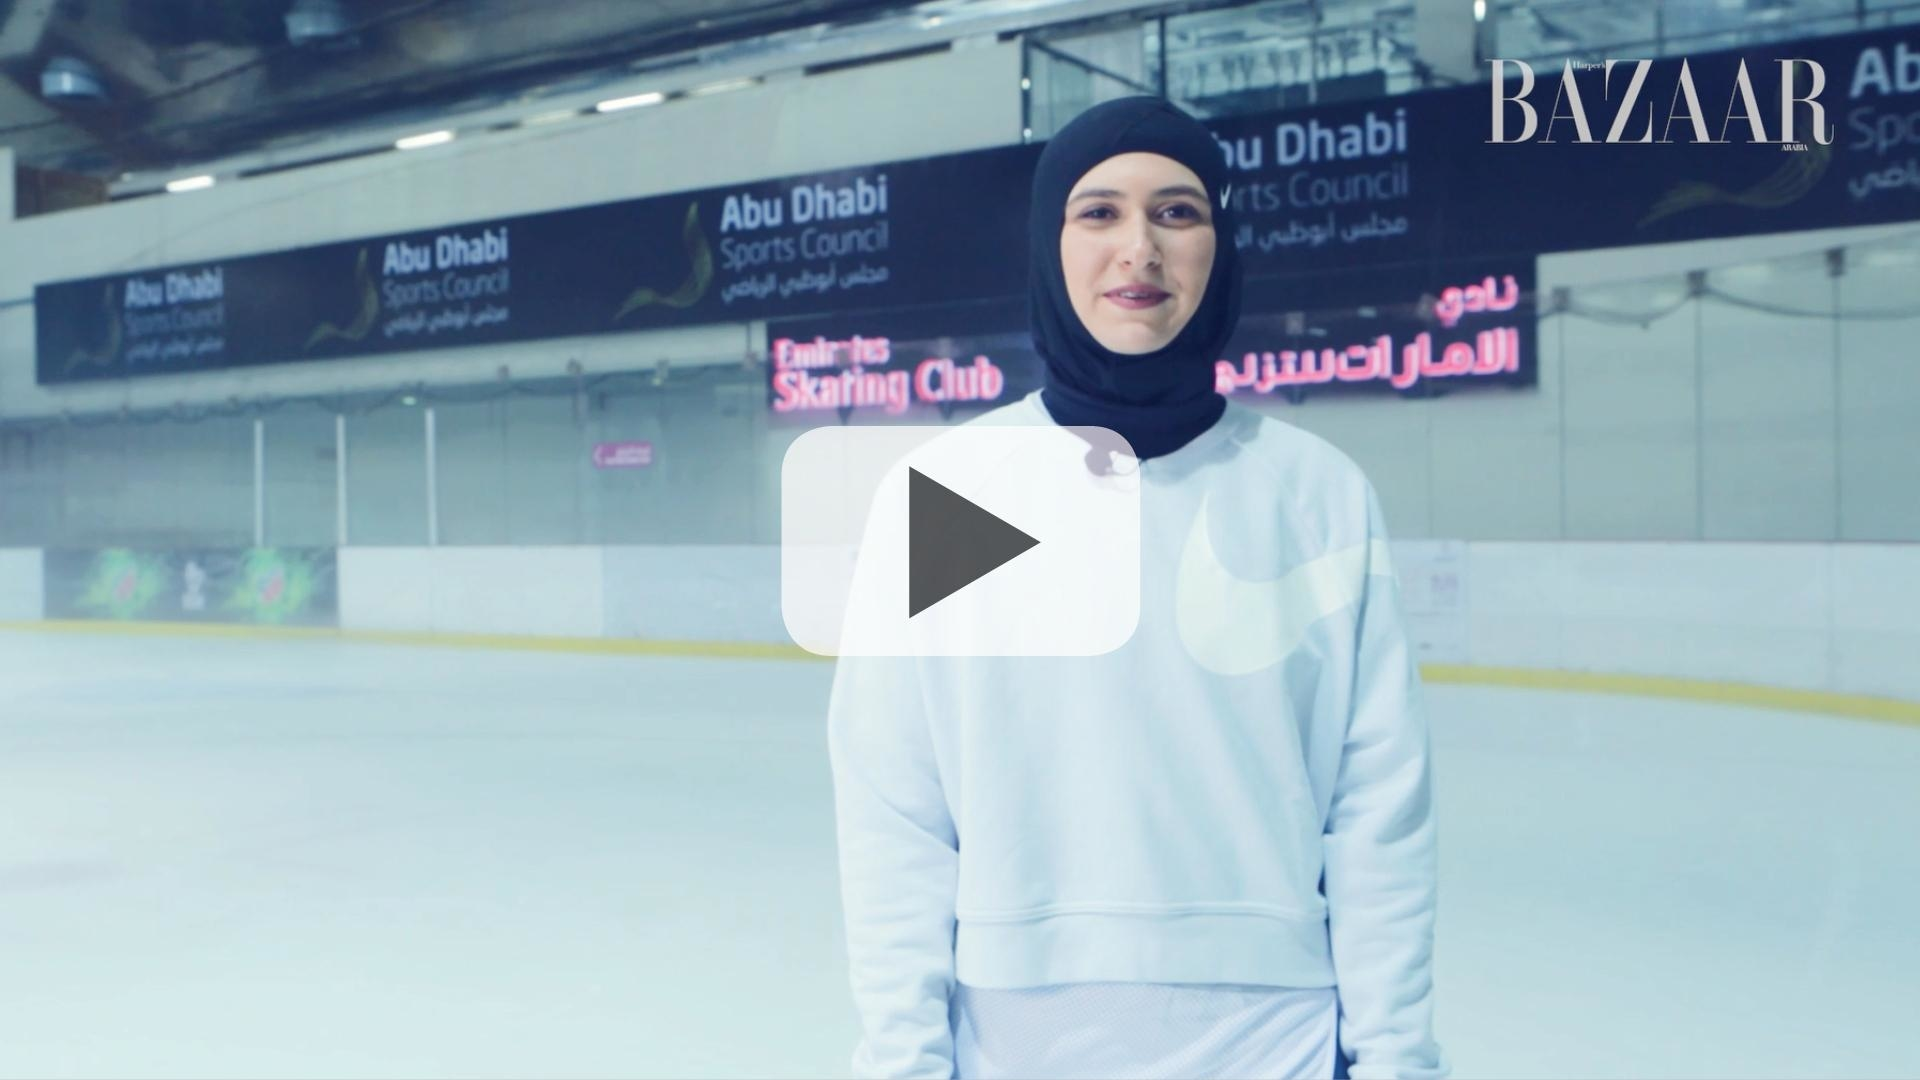 Watch Now: Meet Zahra Lari, The UAE's First Female Figure Skater